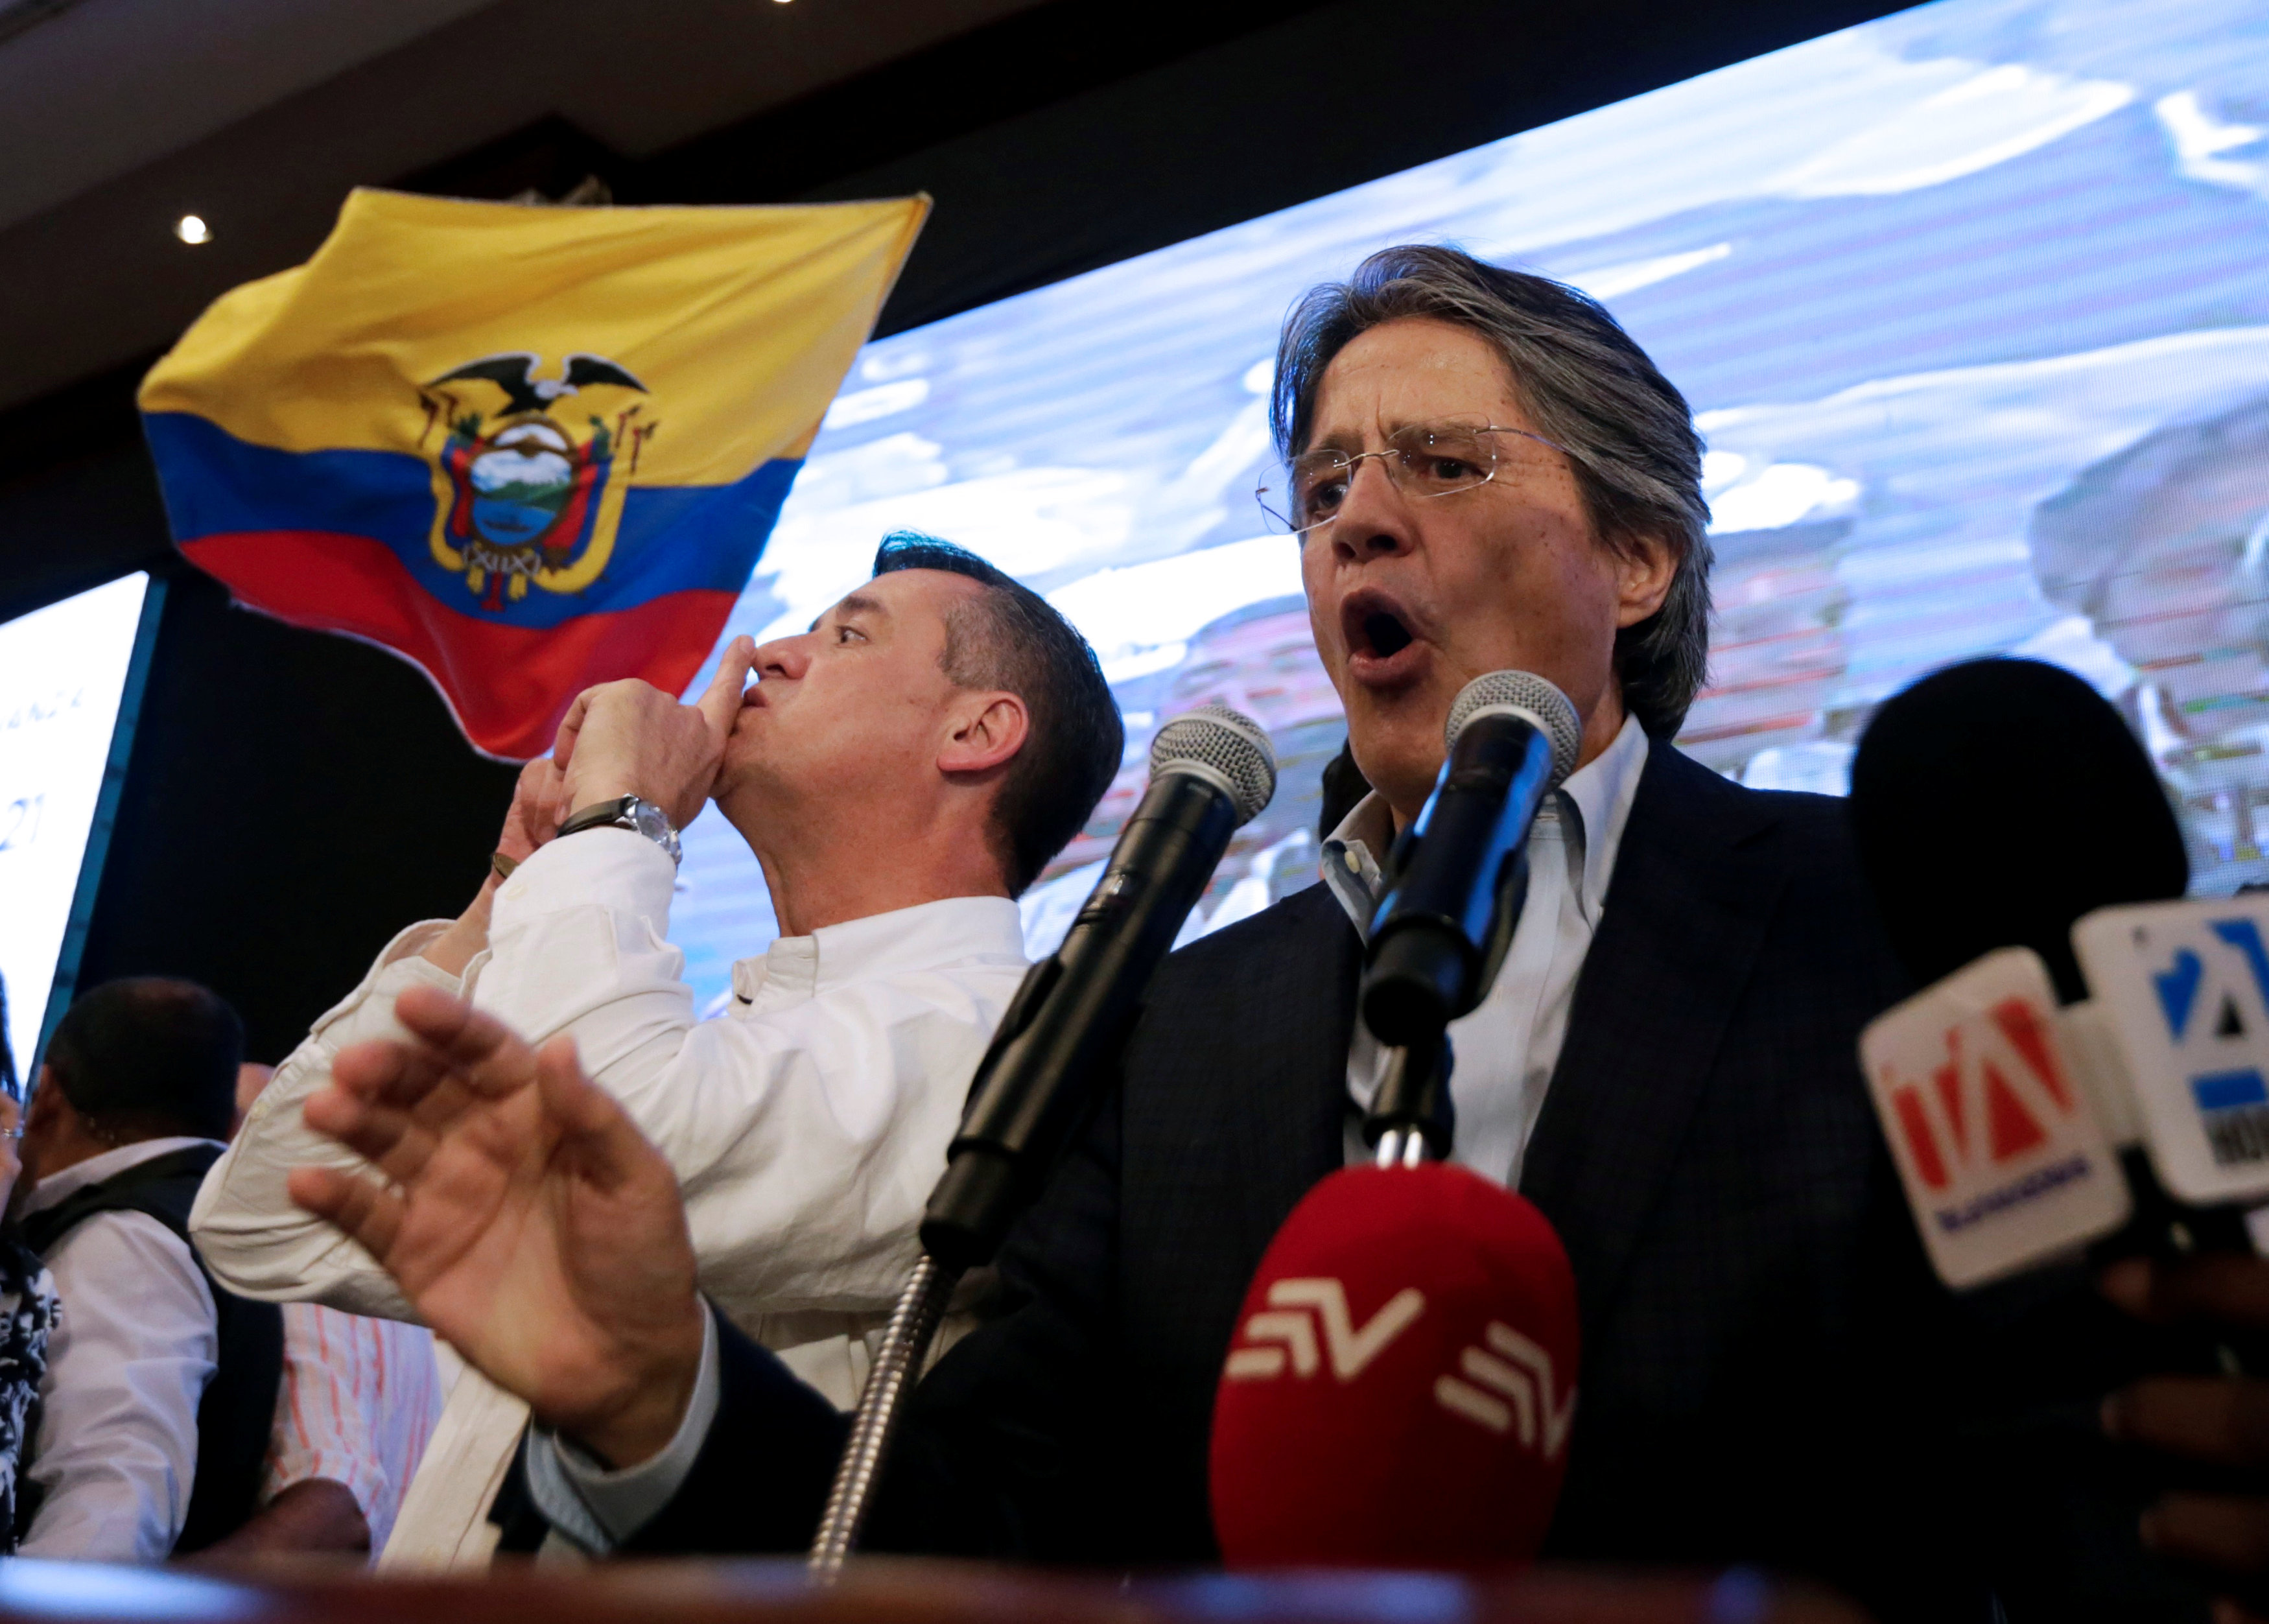 Ecuadorean presidential candidate Guillermo Lasso speaks near vice president candidate Andres Paez while waiting for the results of the national election in a hotel in Guayaquil on April 2, 2017. (REUTERS/Mariana Bazo)